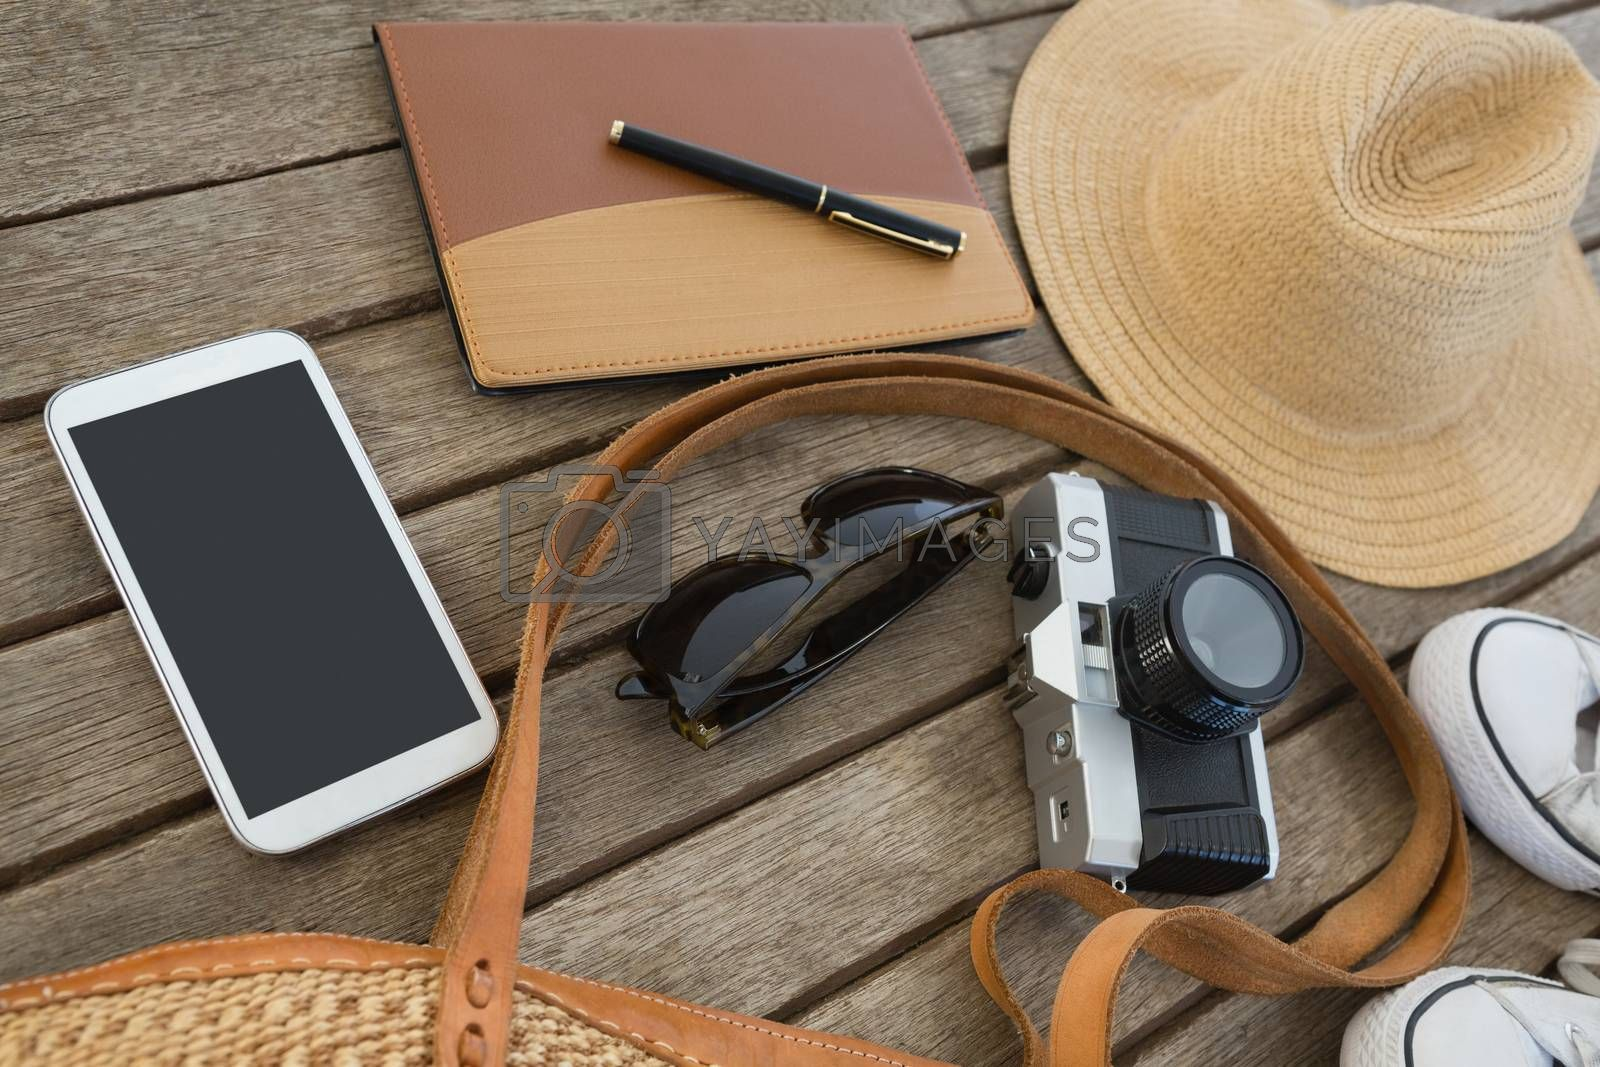 Travel accessories on wooden plank by Wavebreakmedia